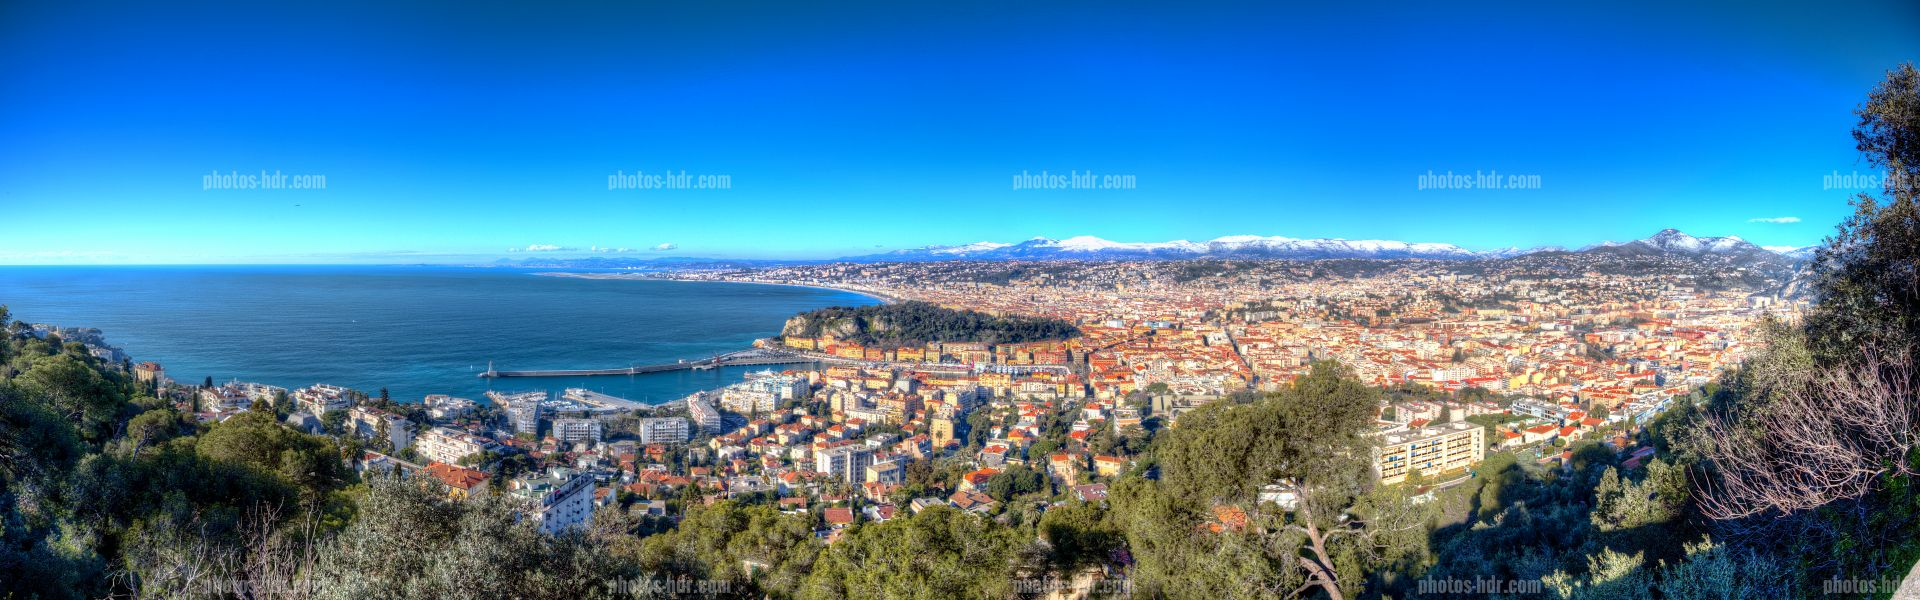 Photos hdr nice photo nice for Porte vue en anglais